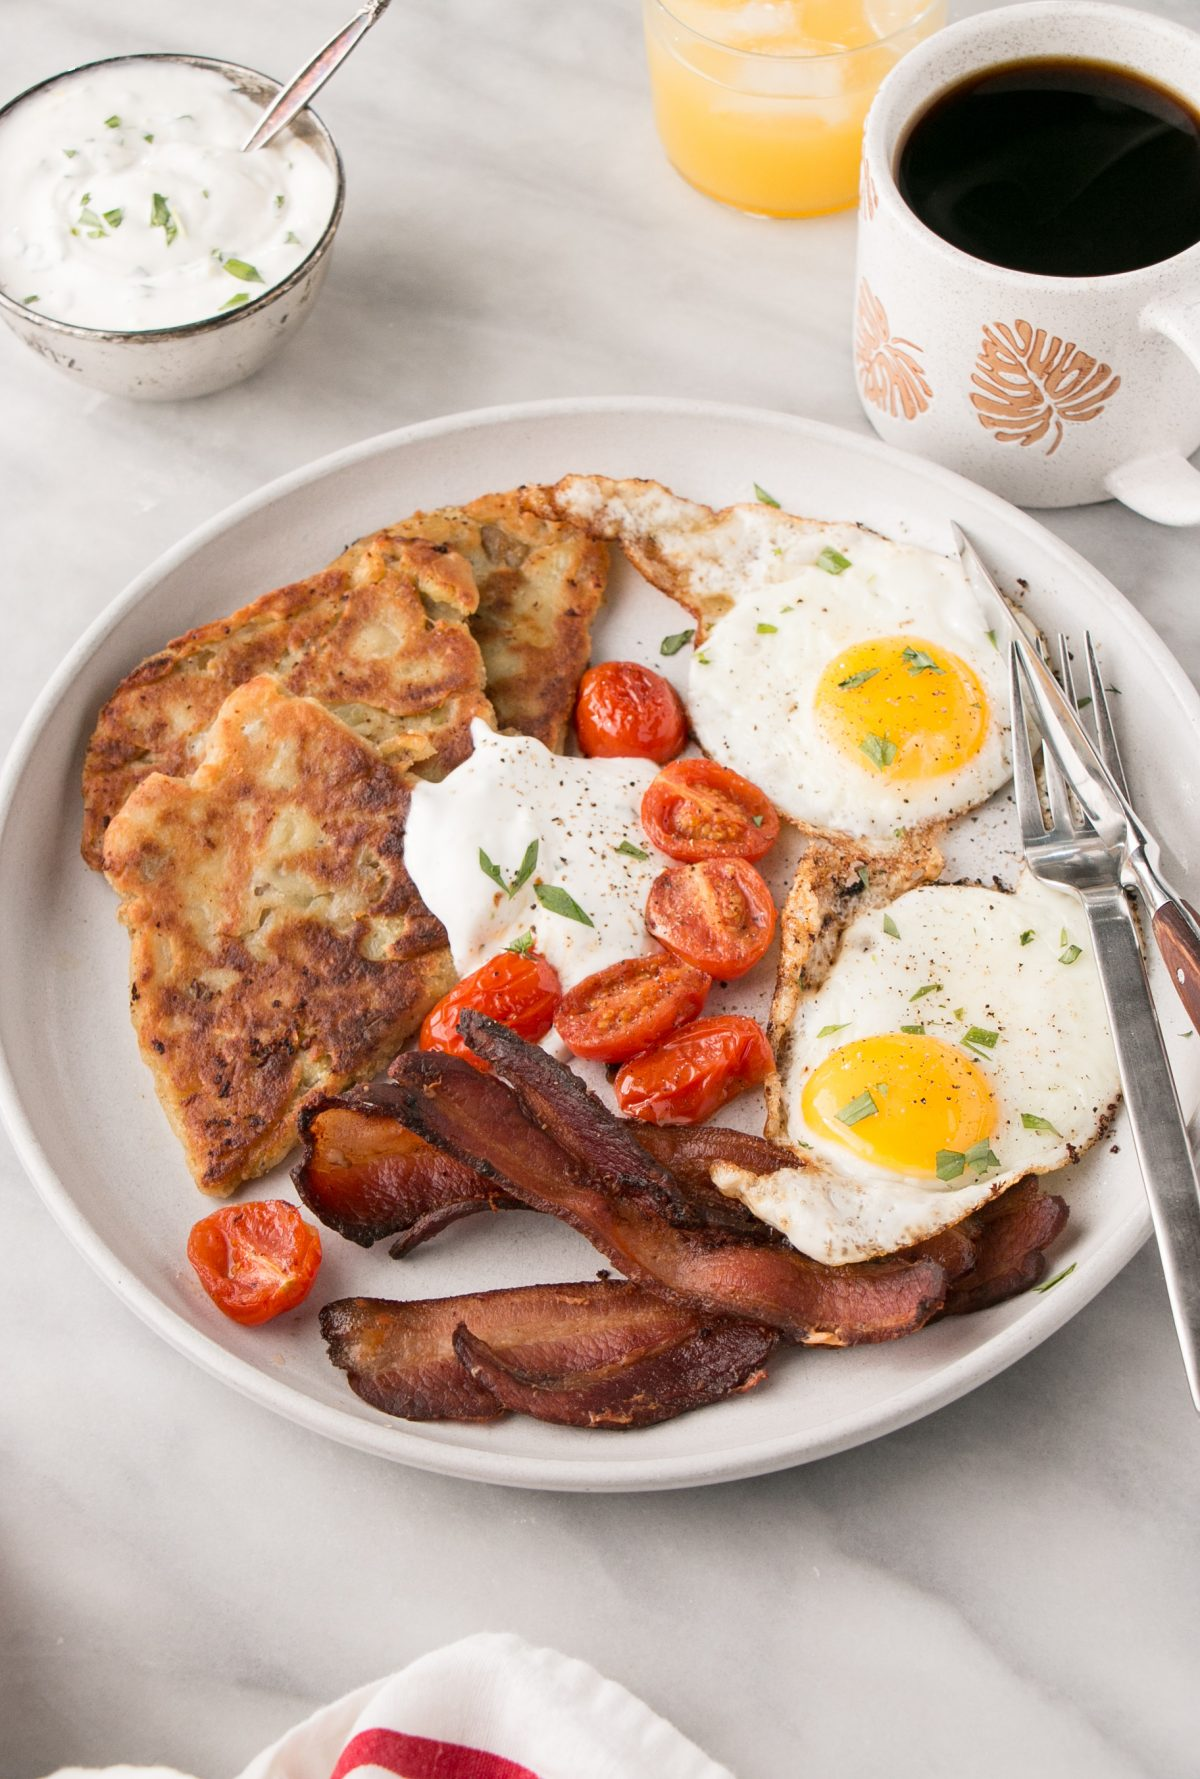 Potato scones, served with eggs, bacon and tomatoes on the white plate